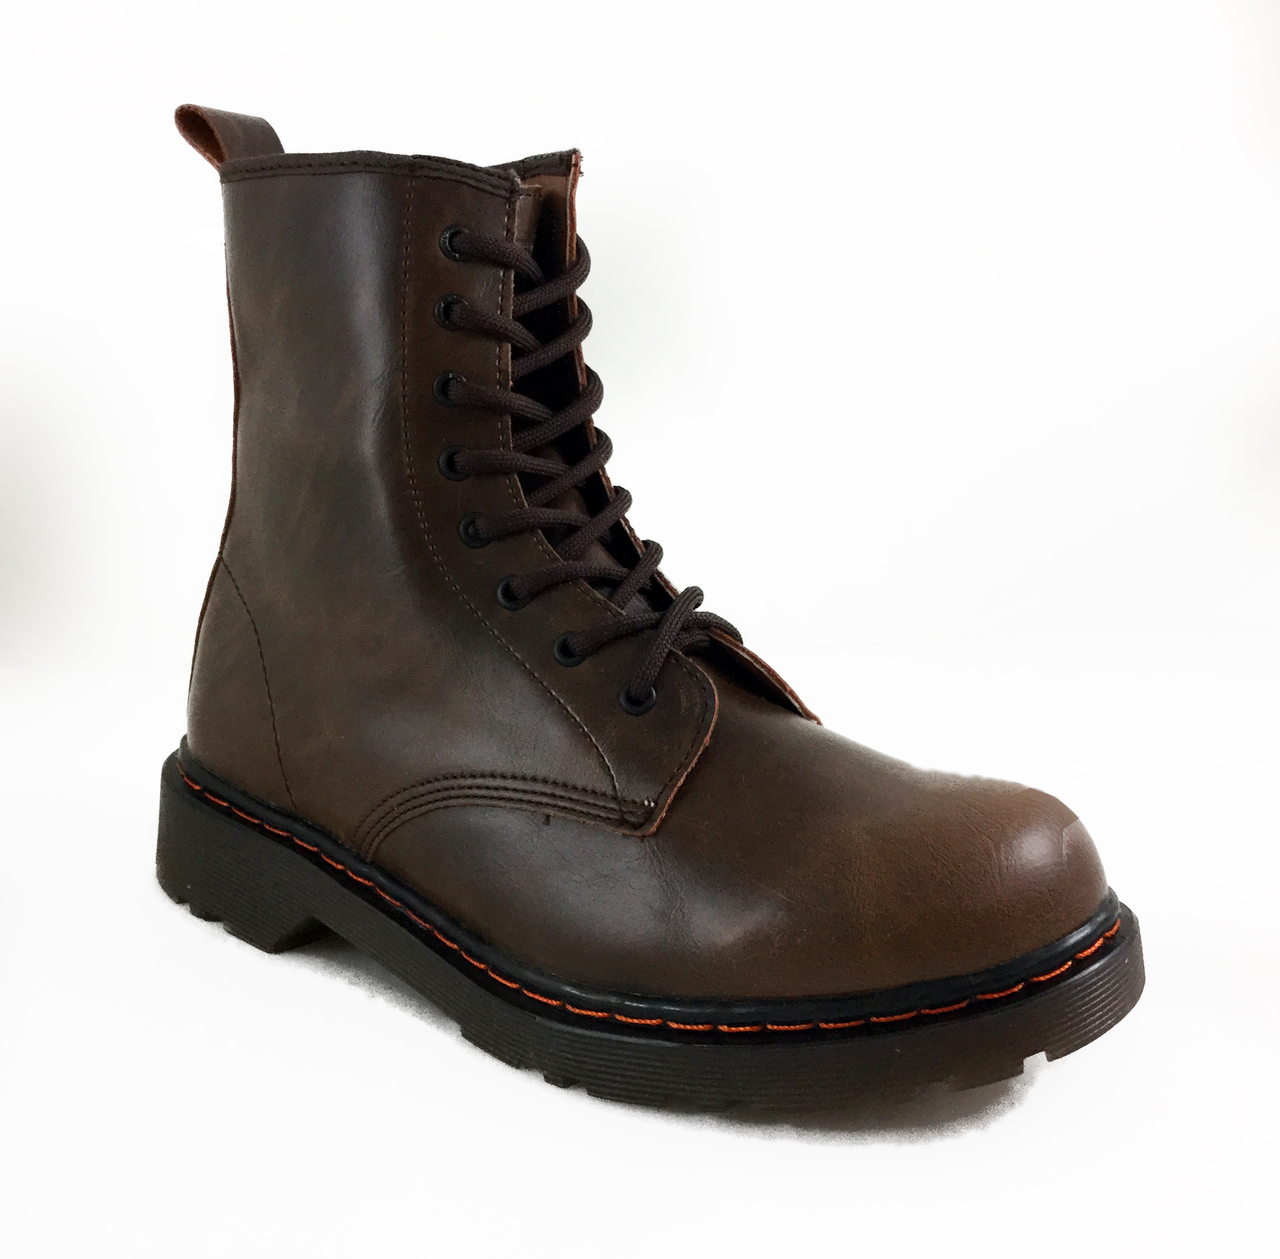 rebelsmarket_panam_womens_vegan_7_eye_brown_boots_boots_3.jpg